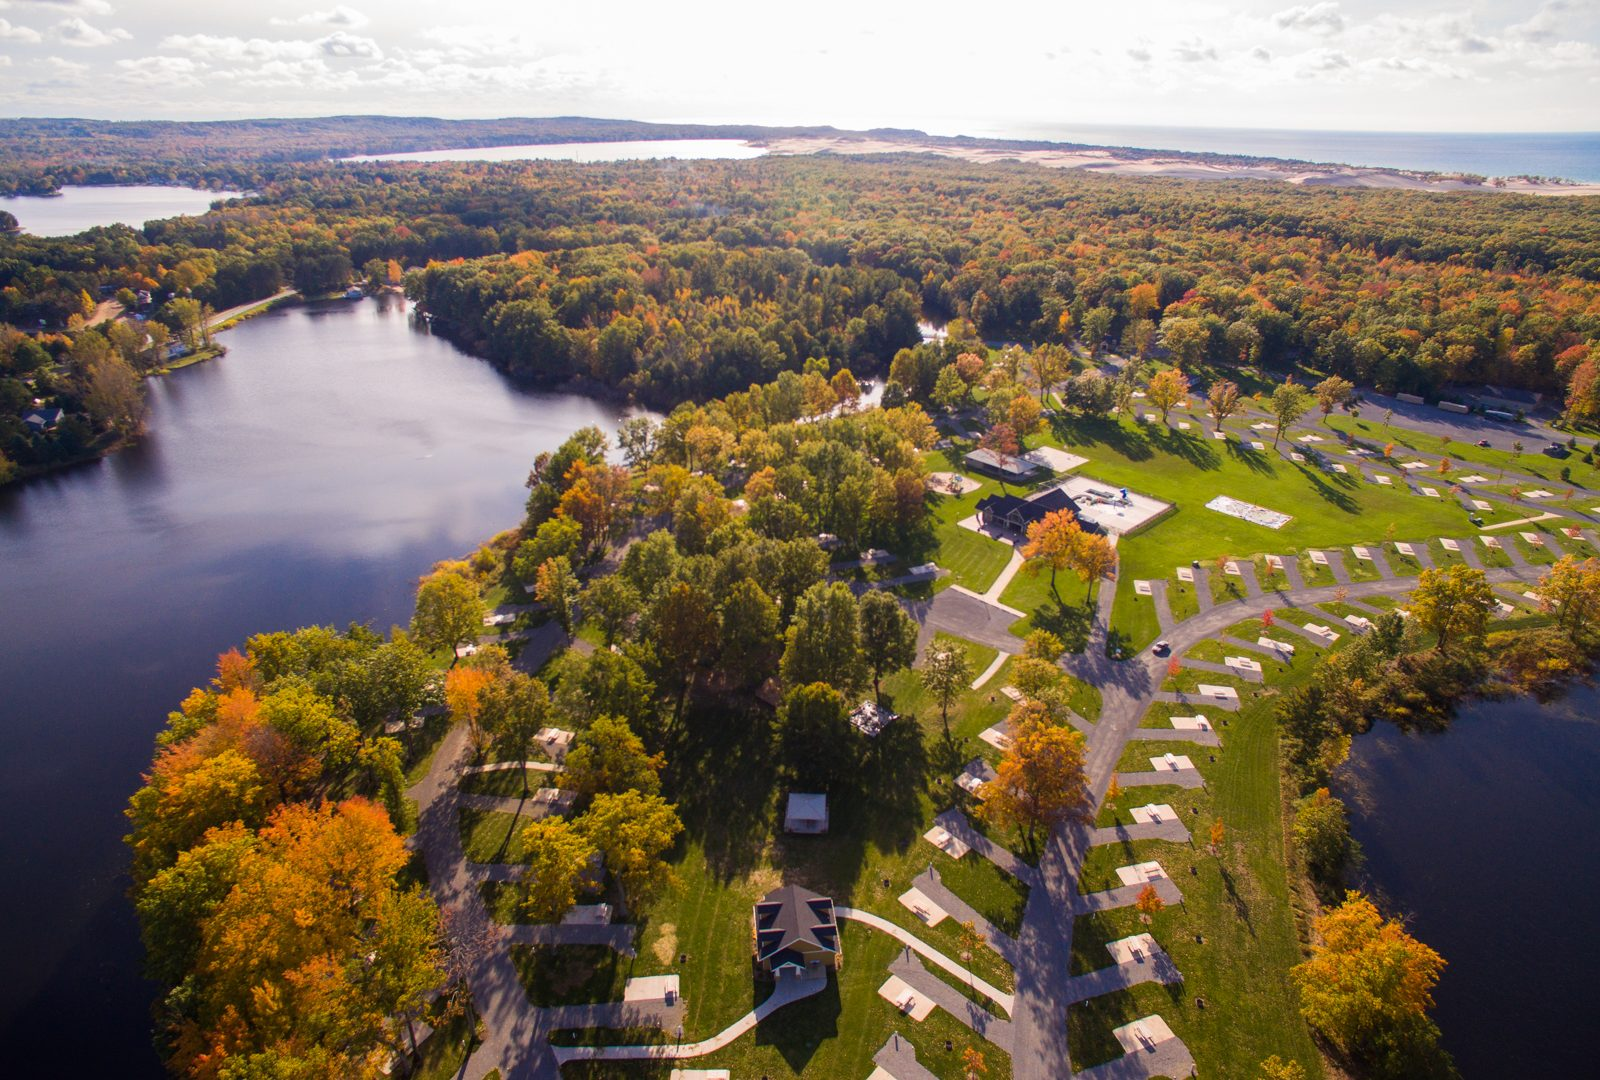 ariel photo of campground in the fall